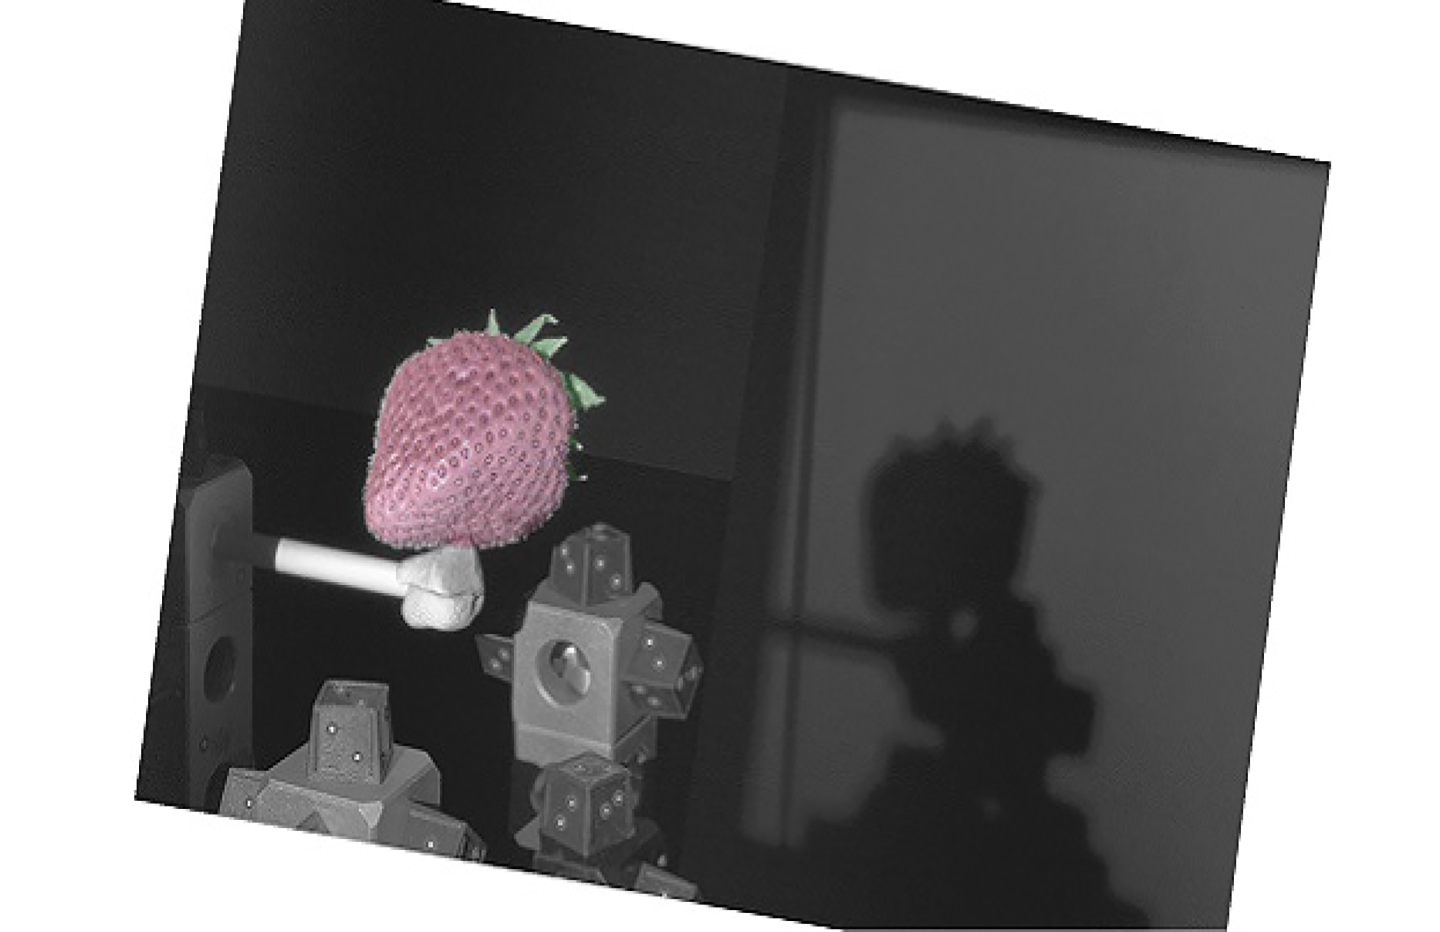 Reverse Engineering Software 3D optical Measuring Device